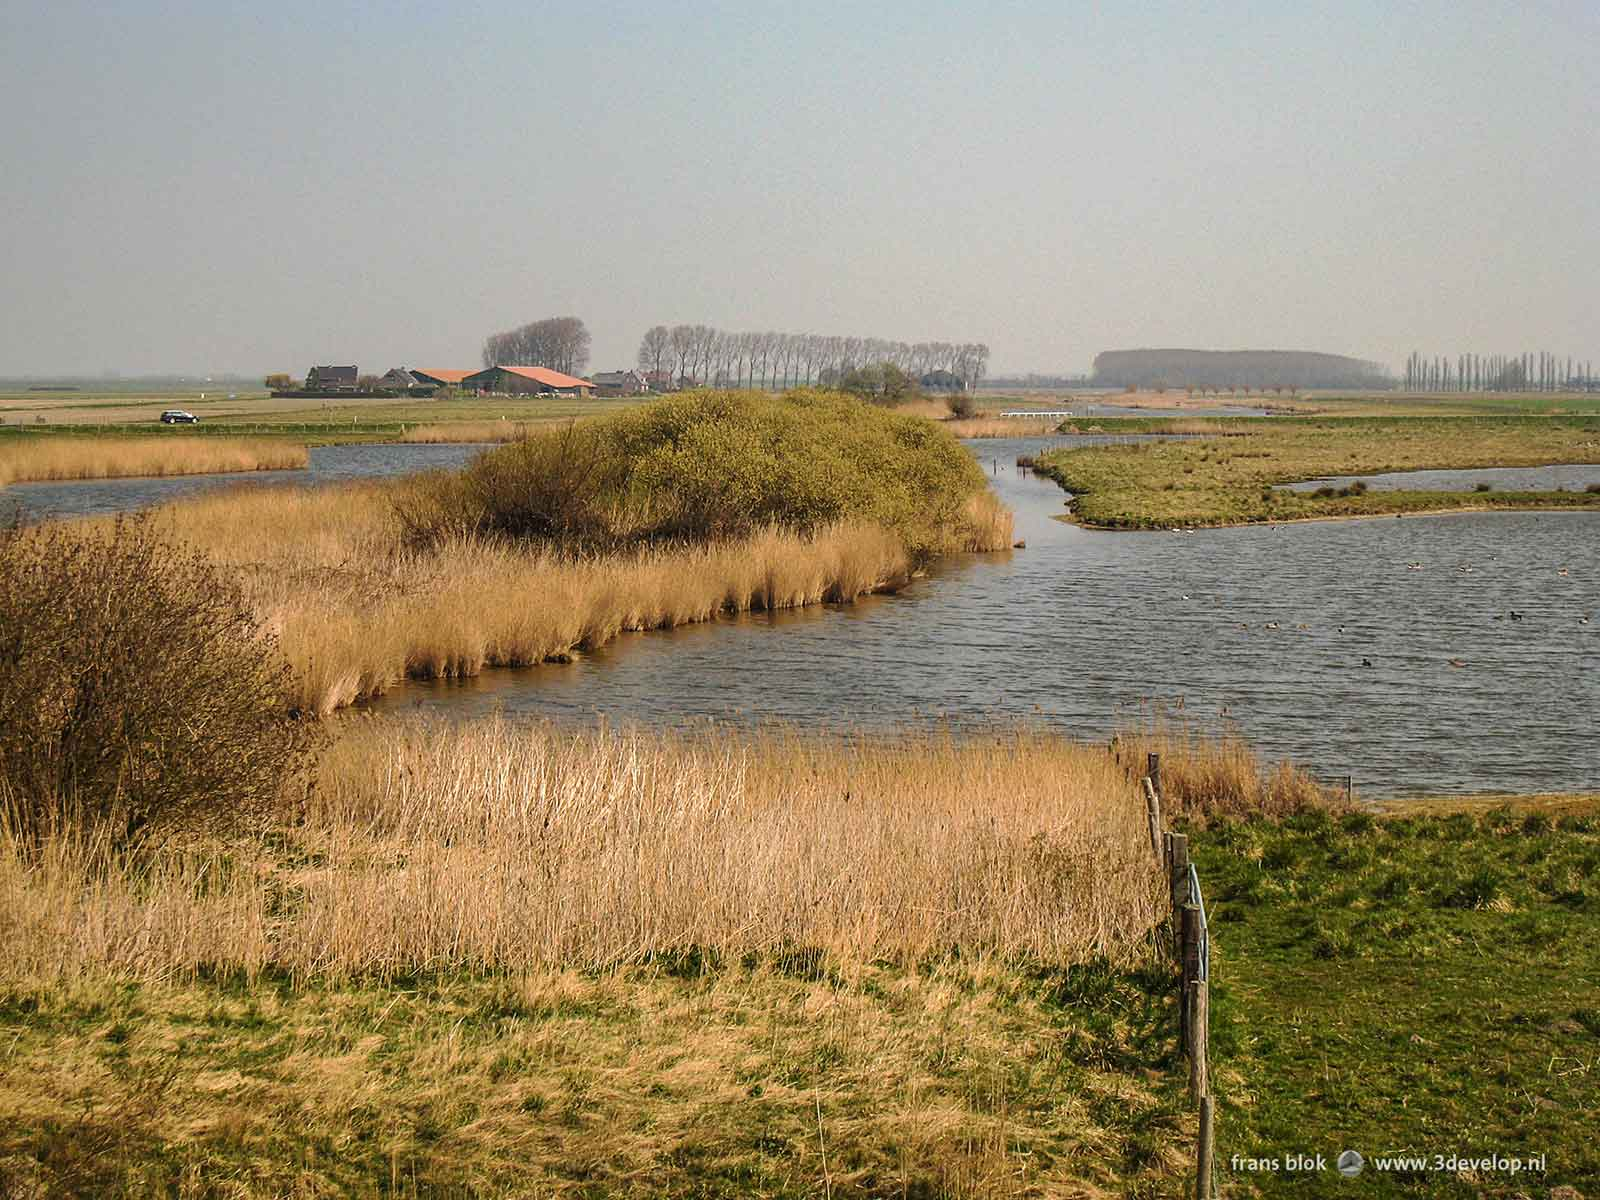 A vast landscape at St. Philipsland, Zeeland, The Netherlands, with creeks, reeds, fields and a farm.